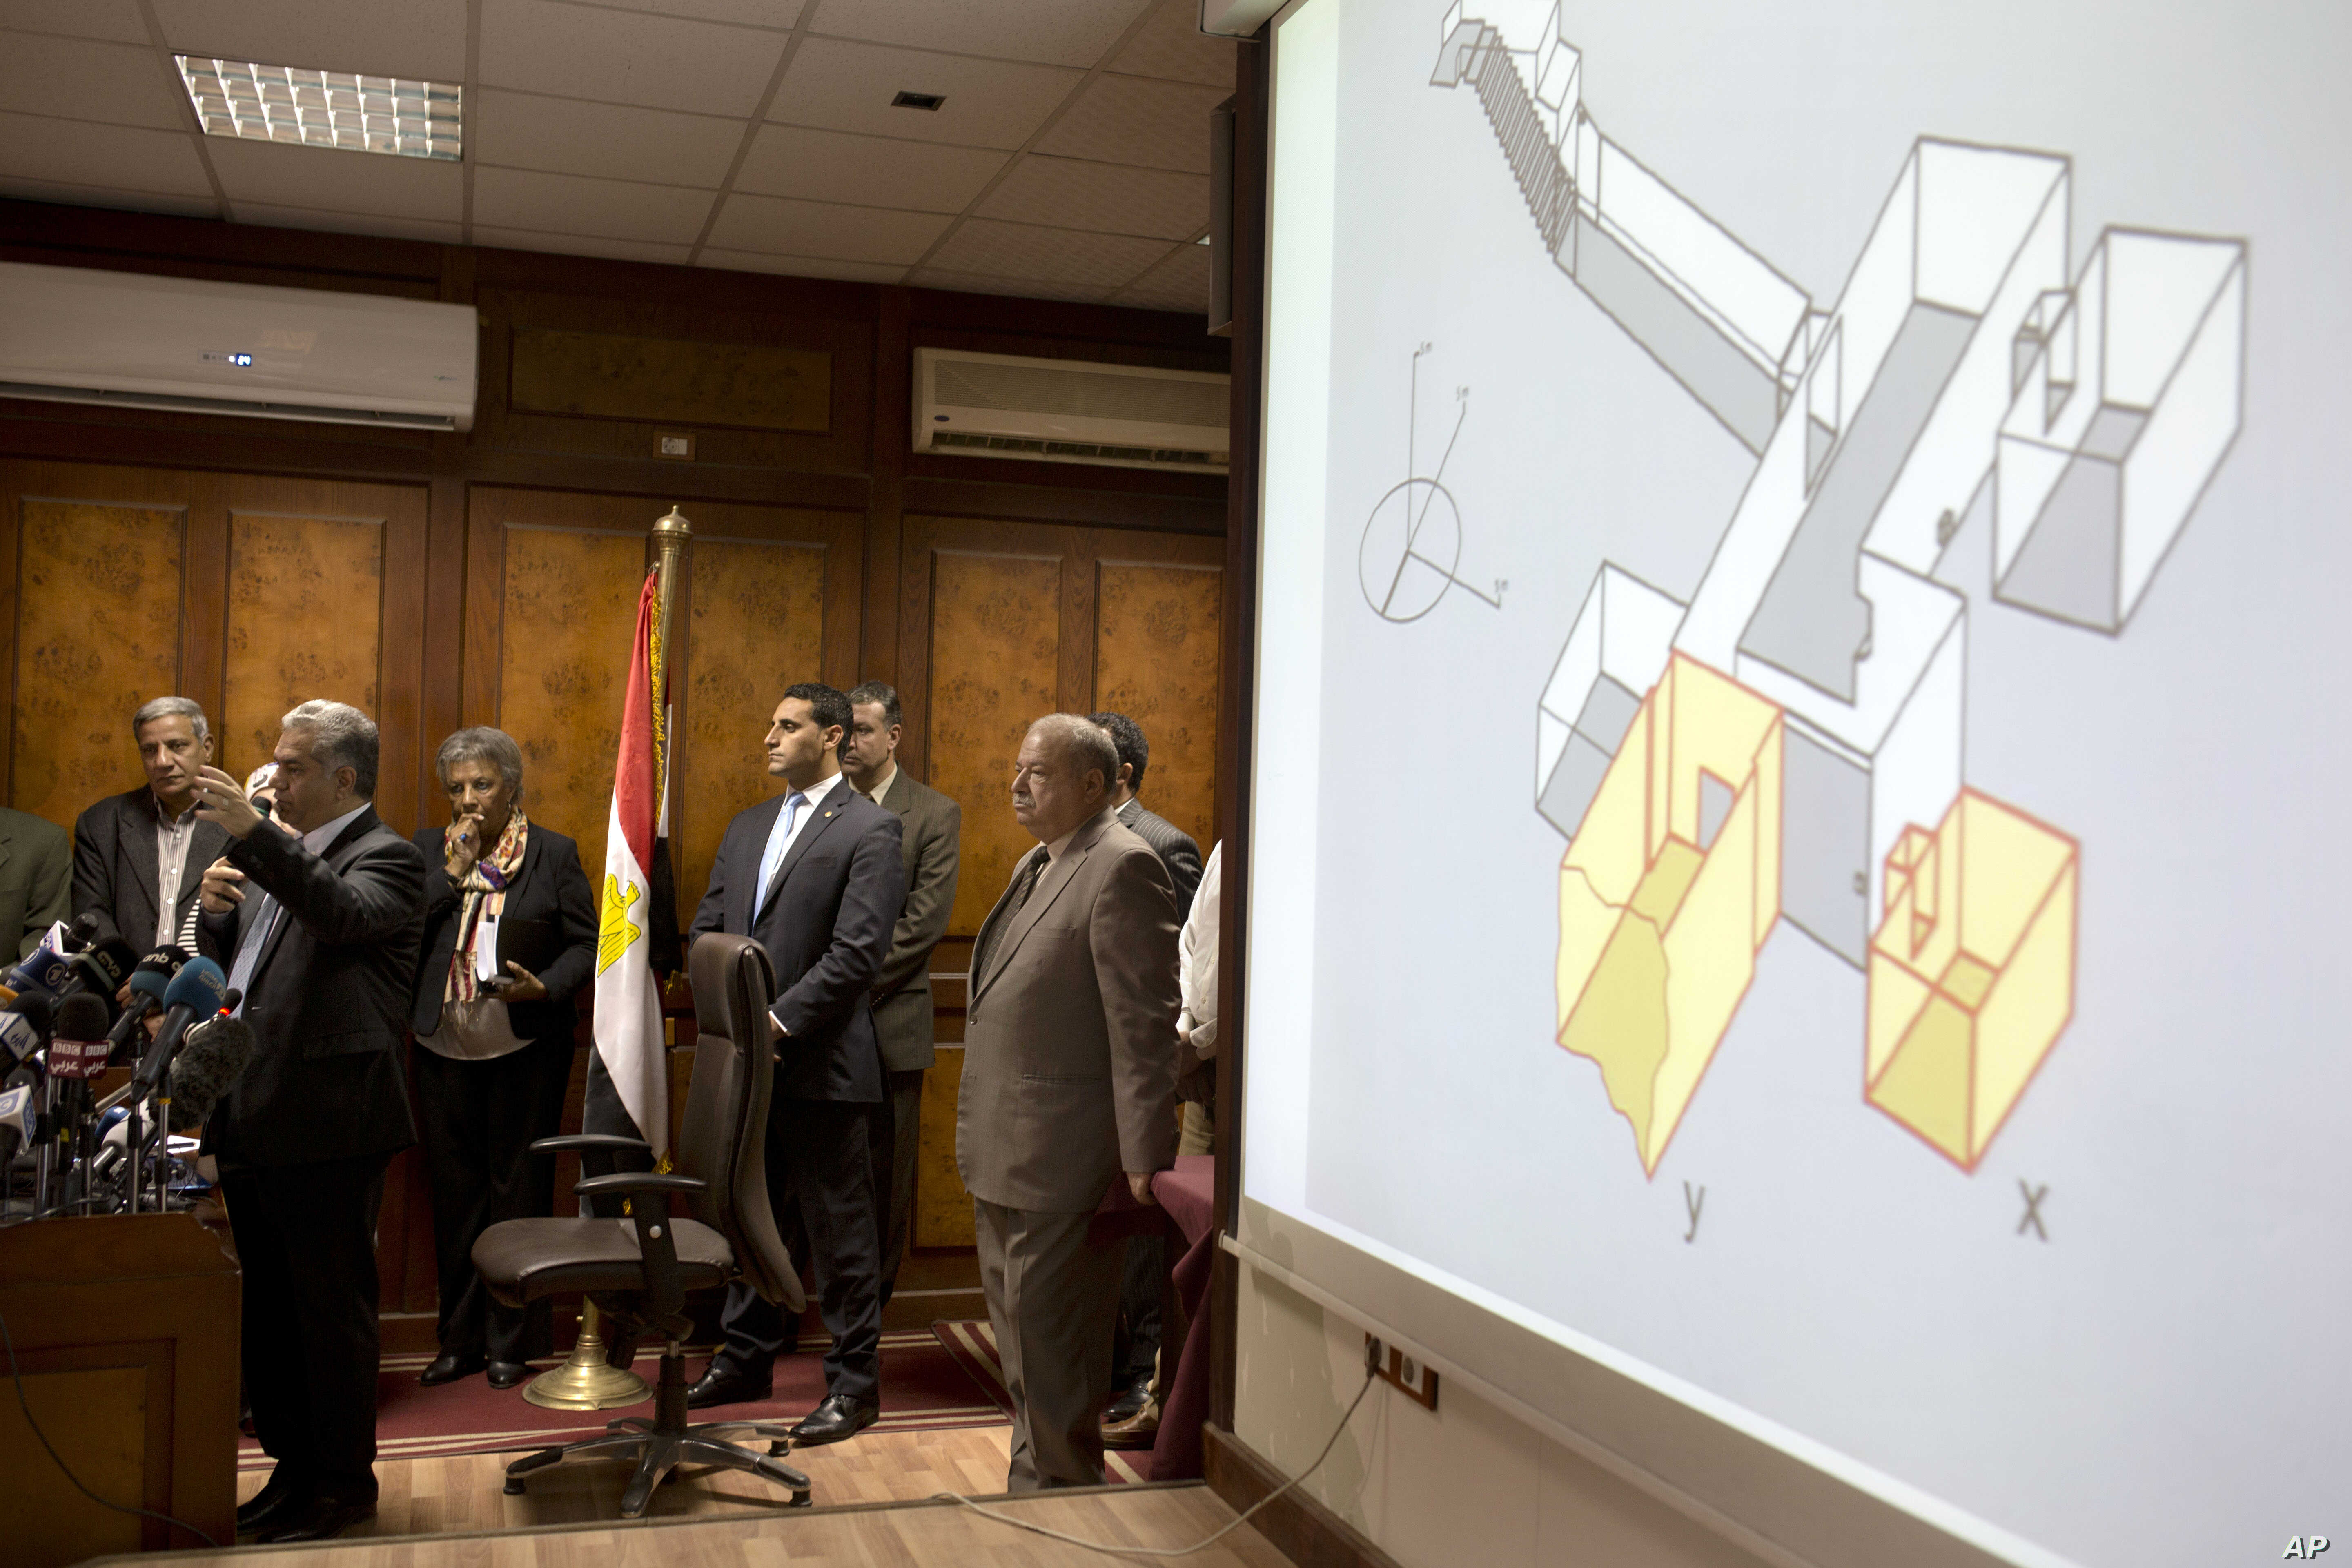 Egypt's Antiquities Minister Mamdouh el-Damaty, left, speaks during a press conference as he displays images of radar scans to King Tut's burial chamber on a projector, at the antiquities ministry in Cairo, Egypt, March 17, 2016.